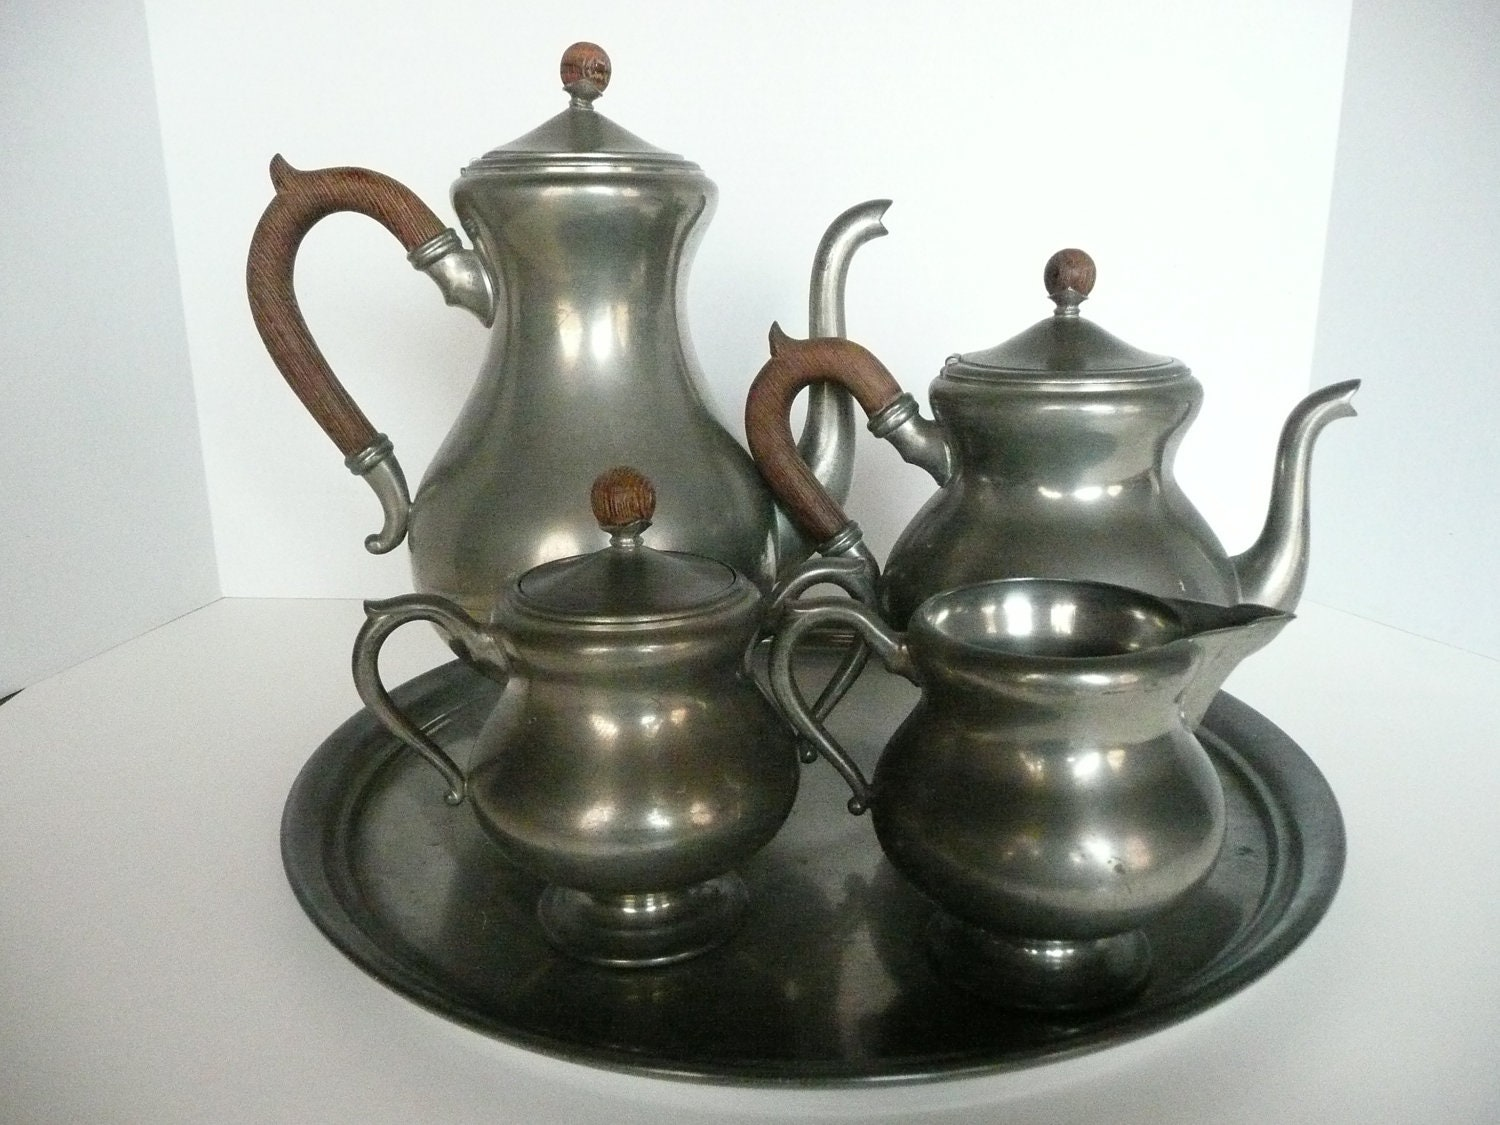 Royal Holland Pewter Tea And Coffee Service Set 6 Pieces 1930s